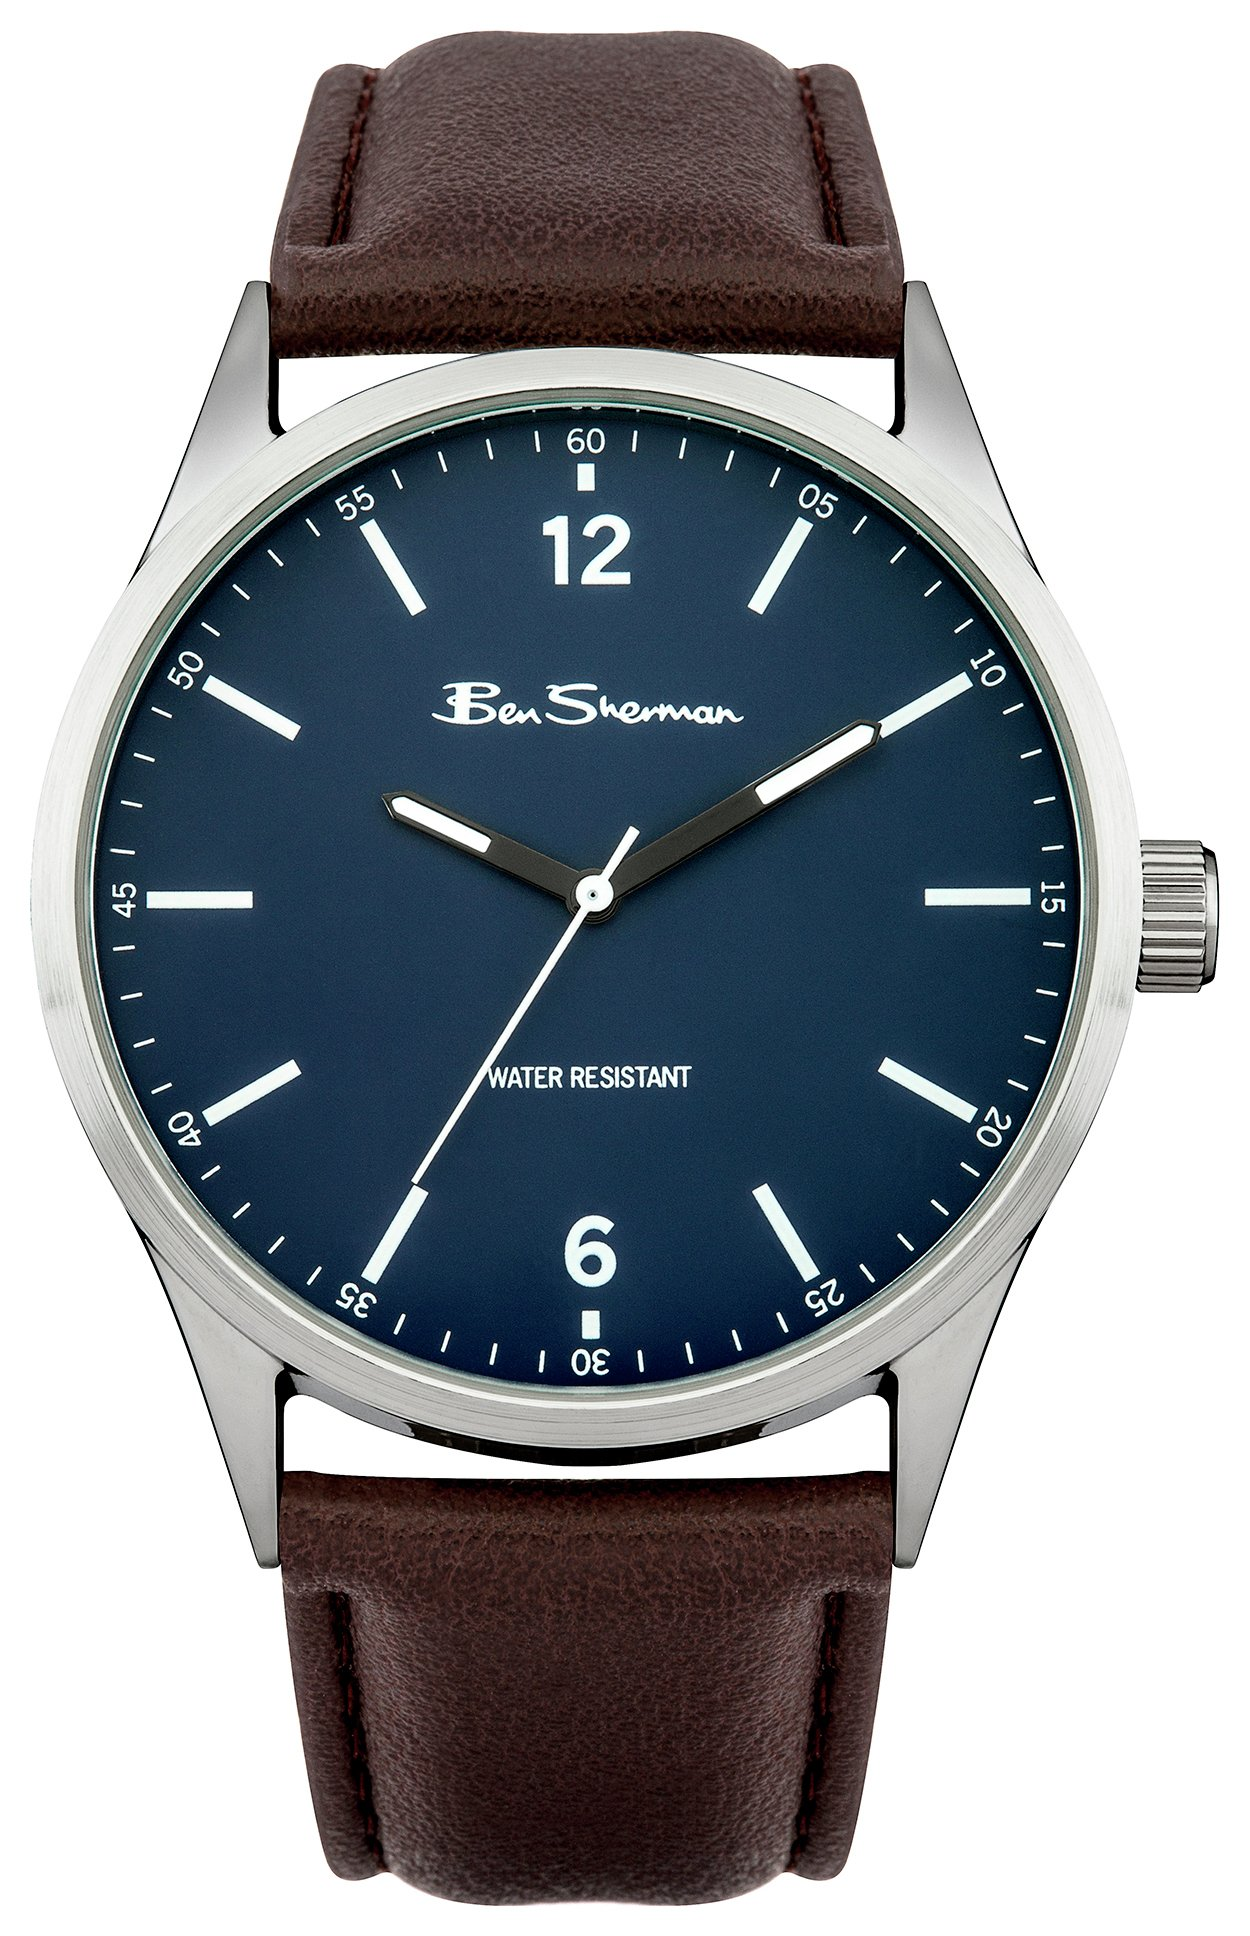 Ben Sherman Men's Brown Strap Watch Gift Set